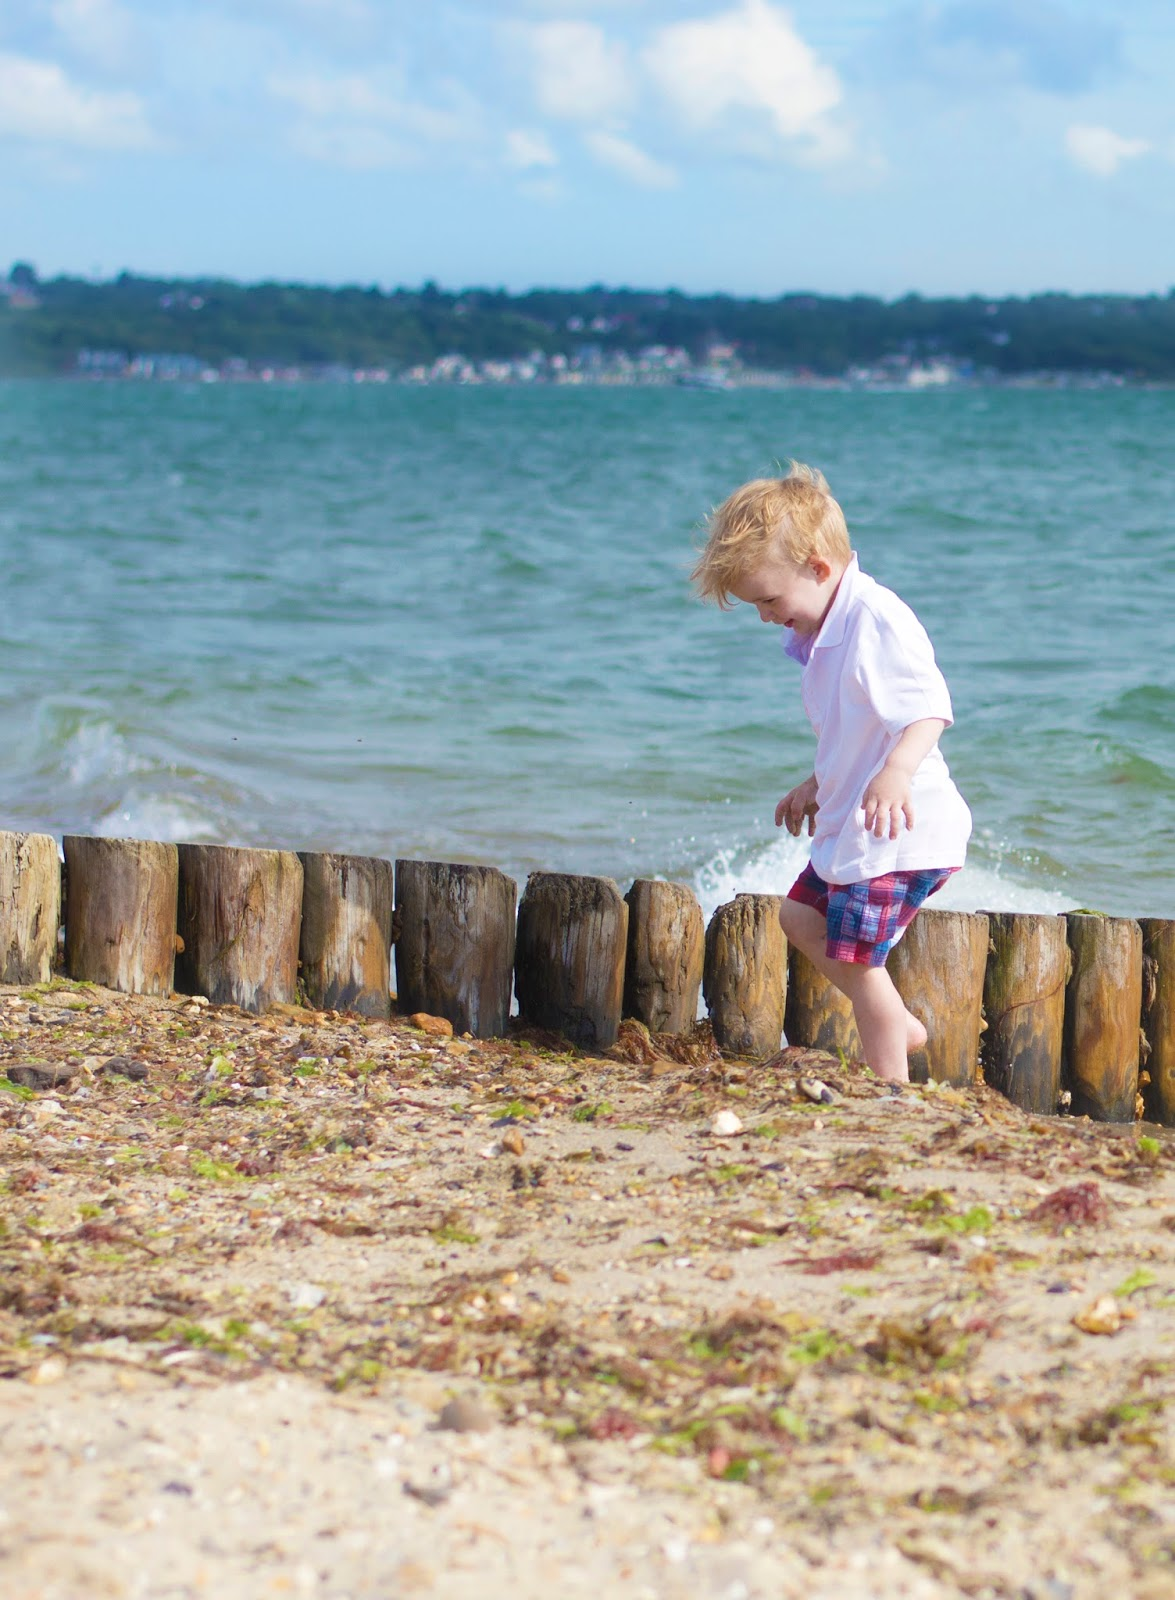 SANDCASTLES AND STAYCATIONS [PARKDEAN HOLIDAY COMPETITION]